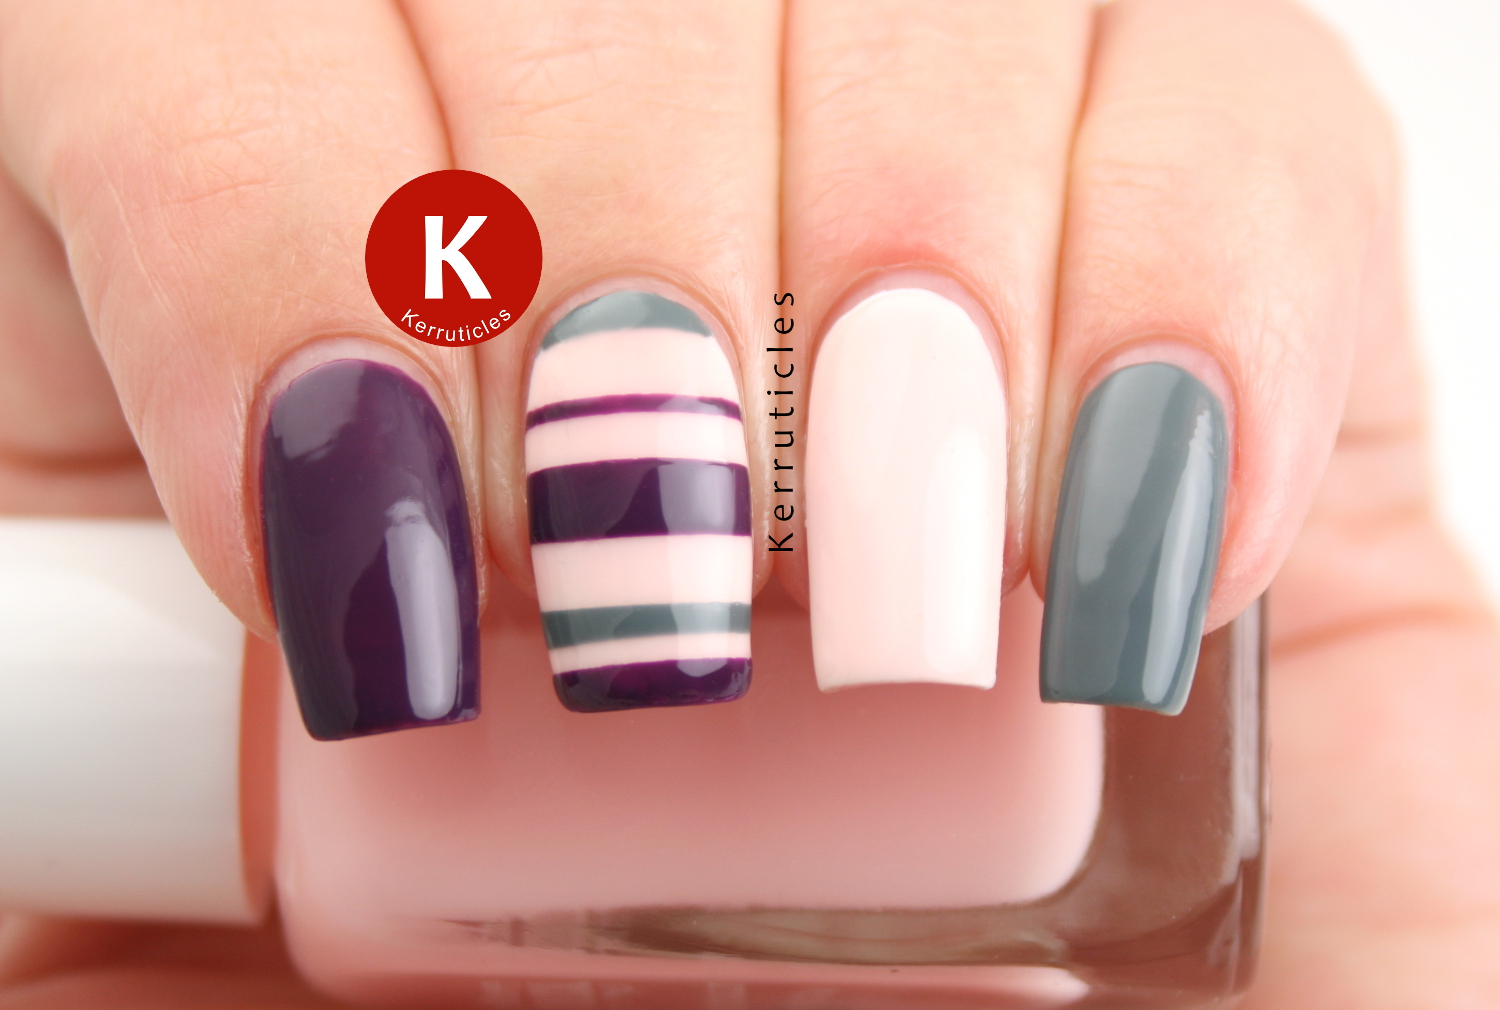 Pink, purple and grey stripes using Diabolical Nail Varnishes from Firebox.com